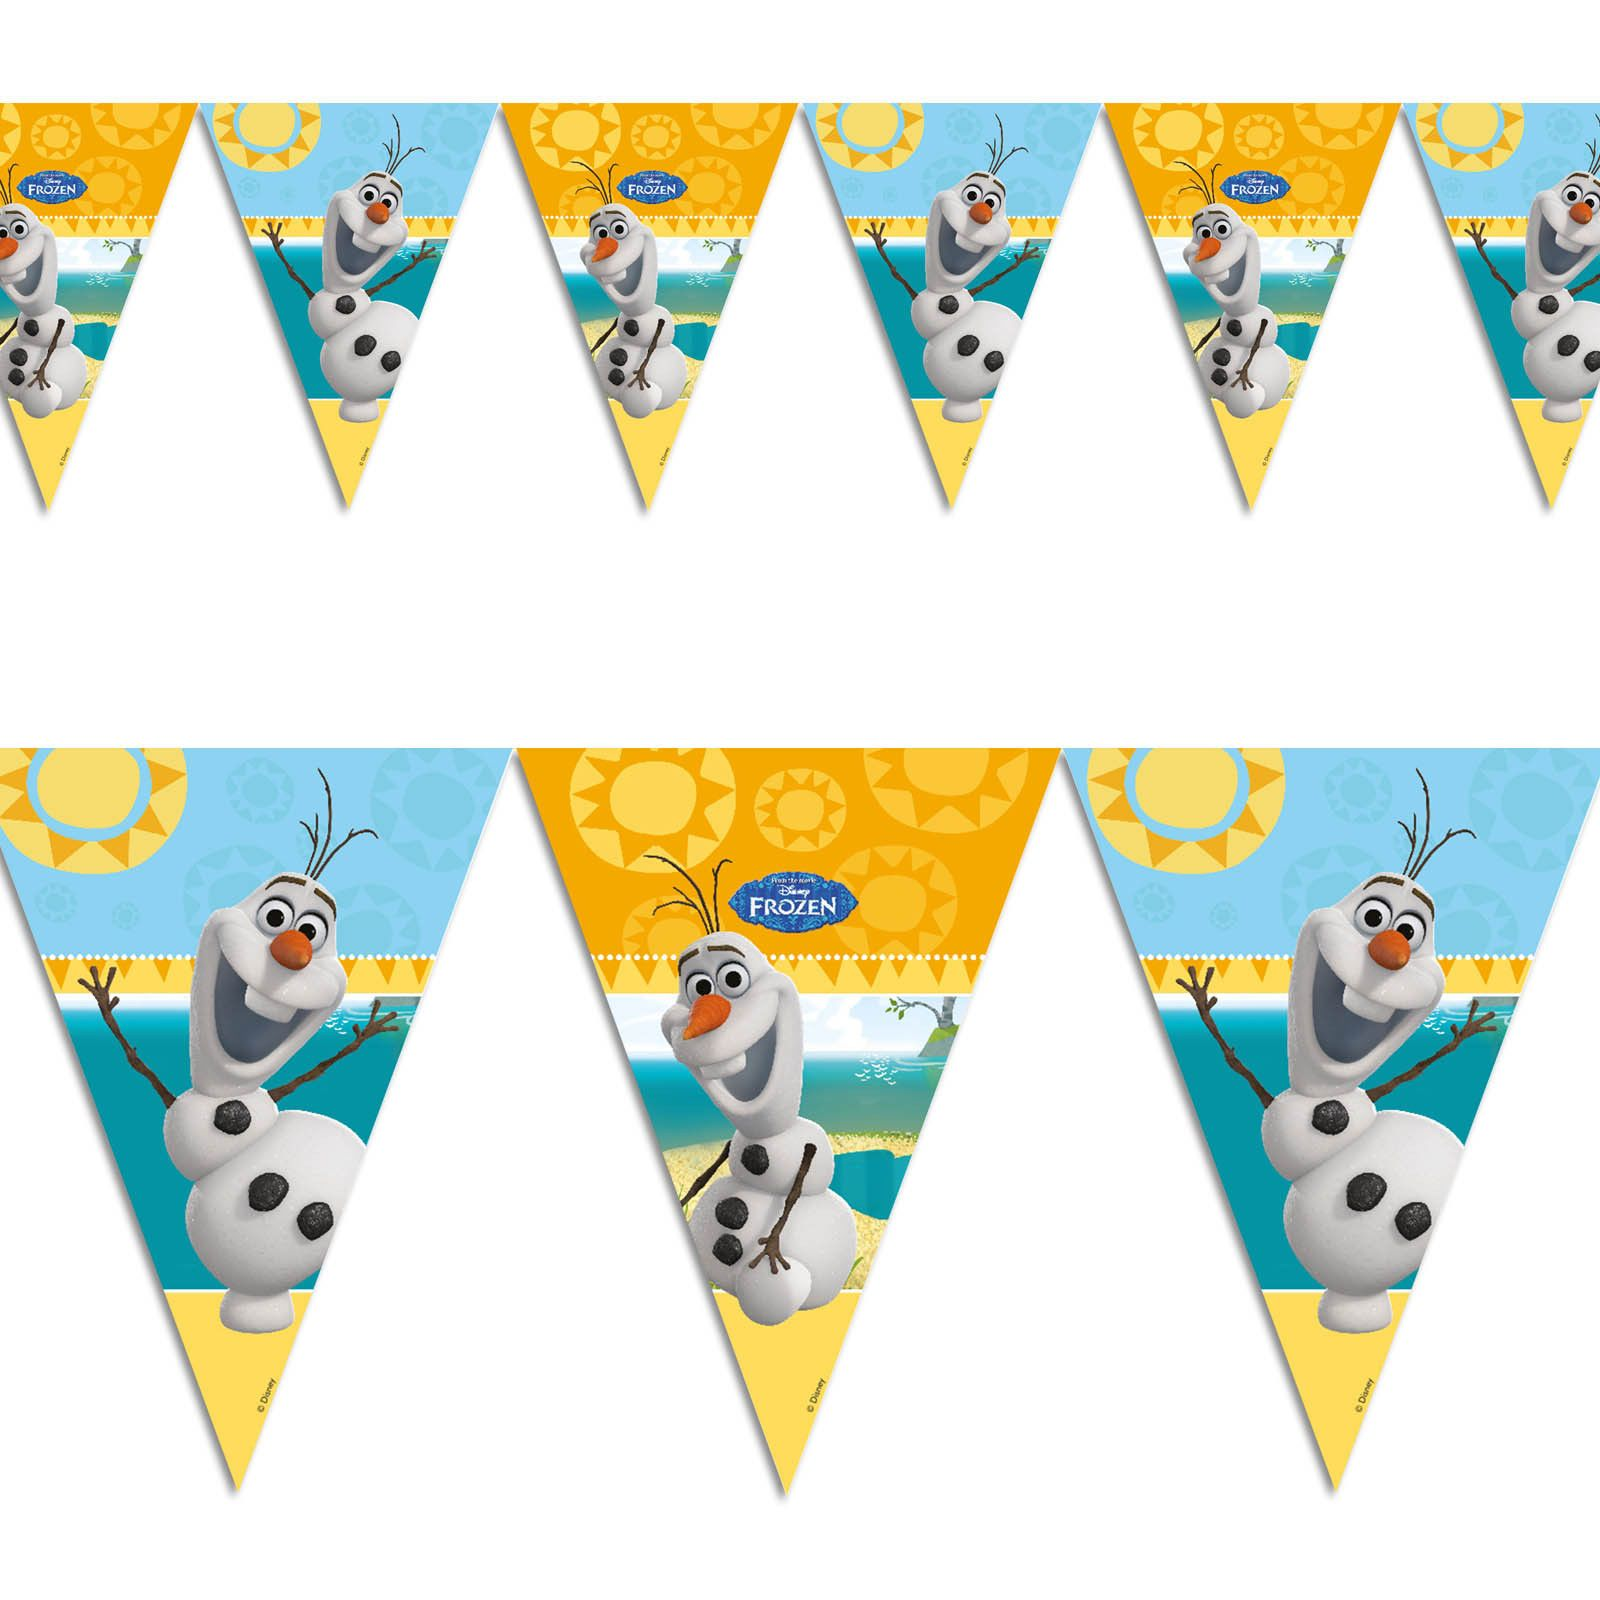 M disneyus frozen summer olaf snowman party pennant flag banner